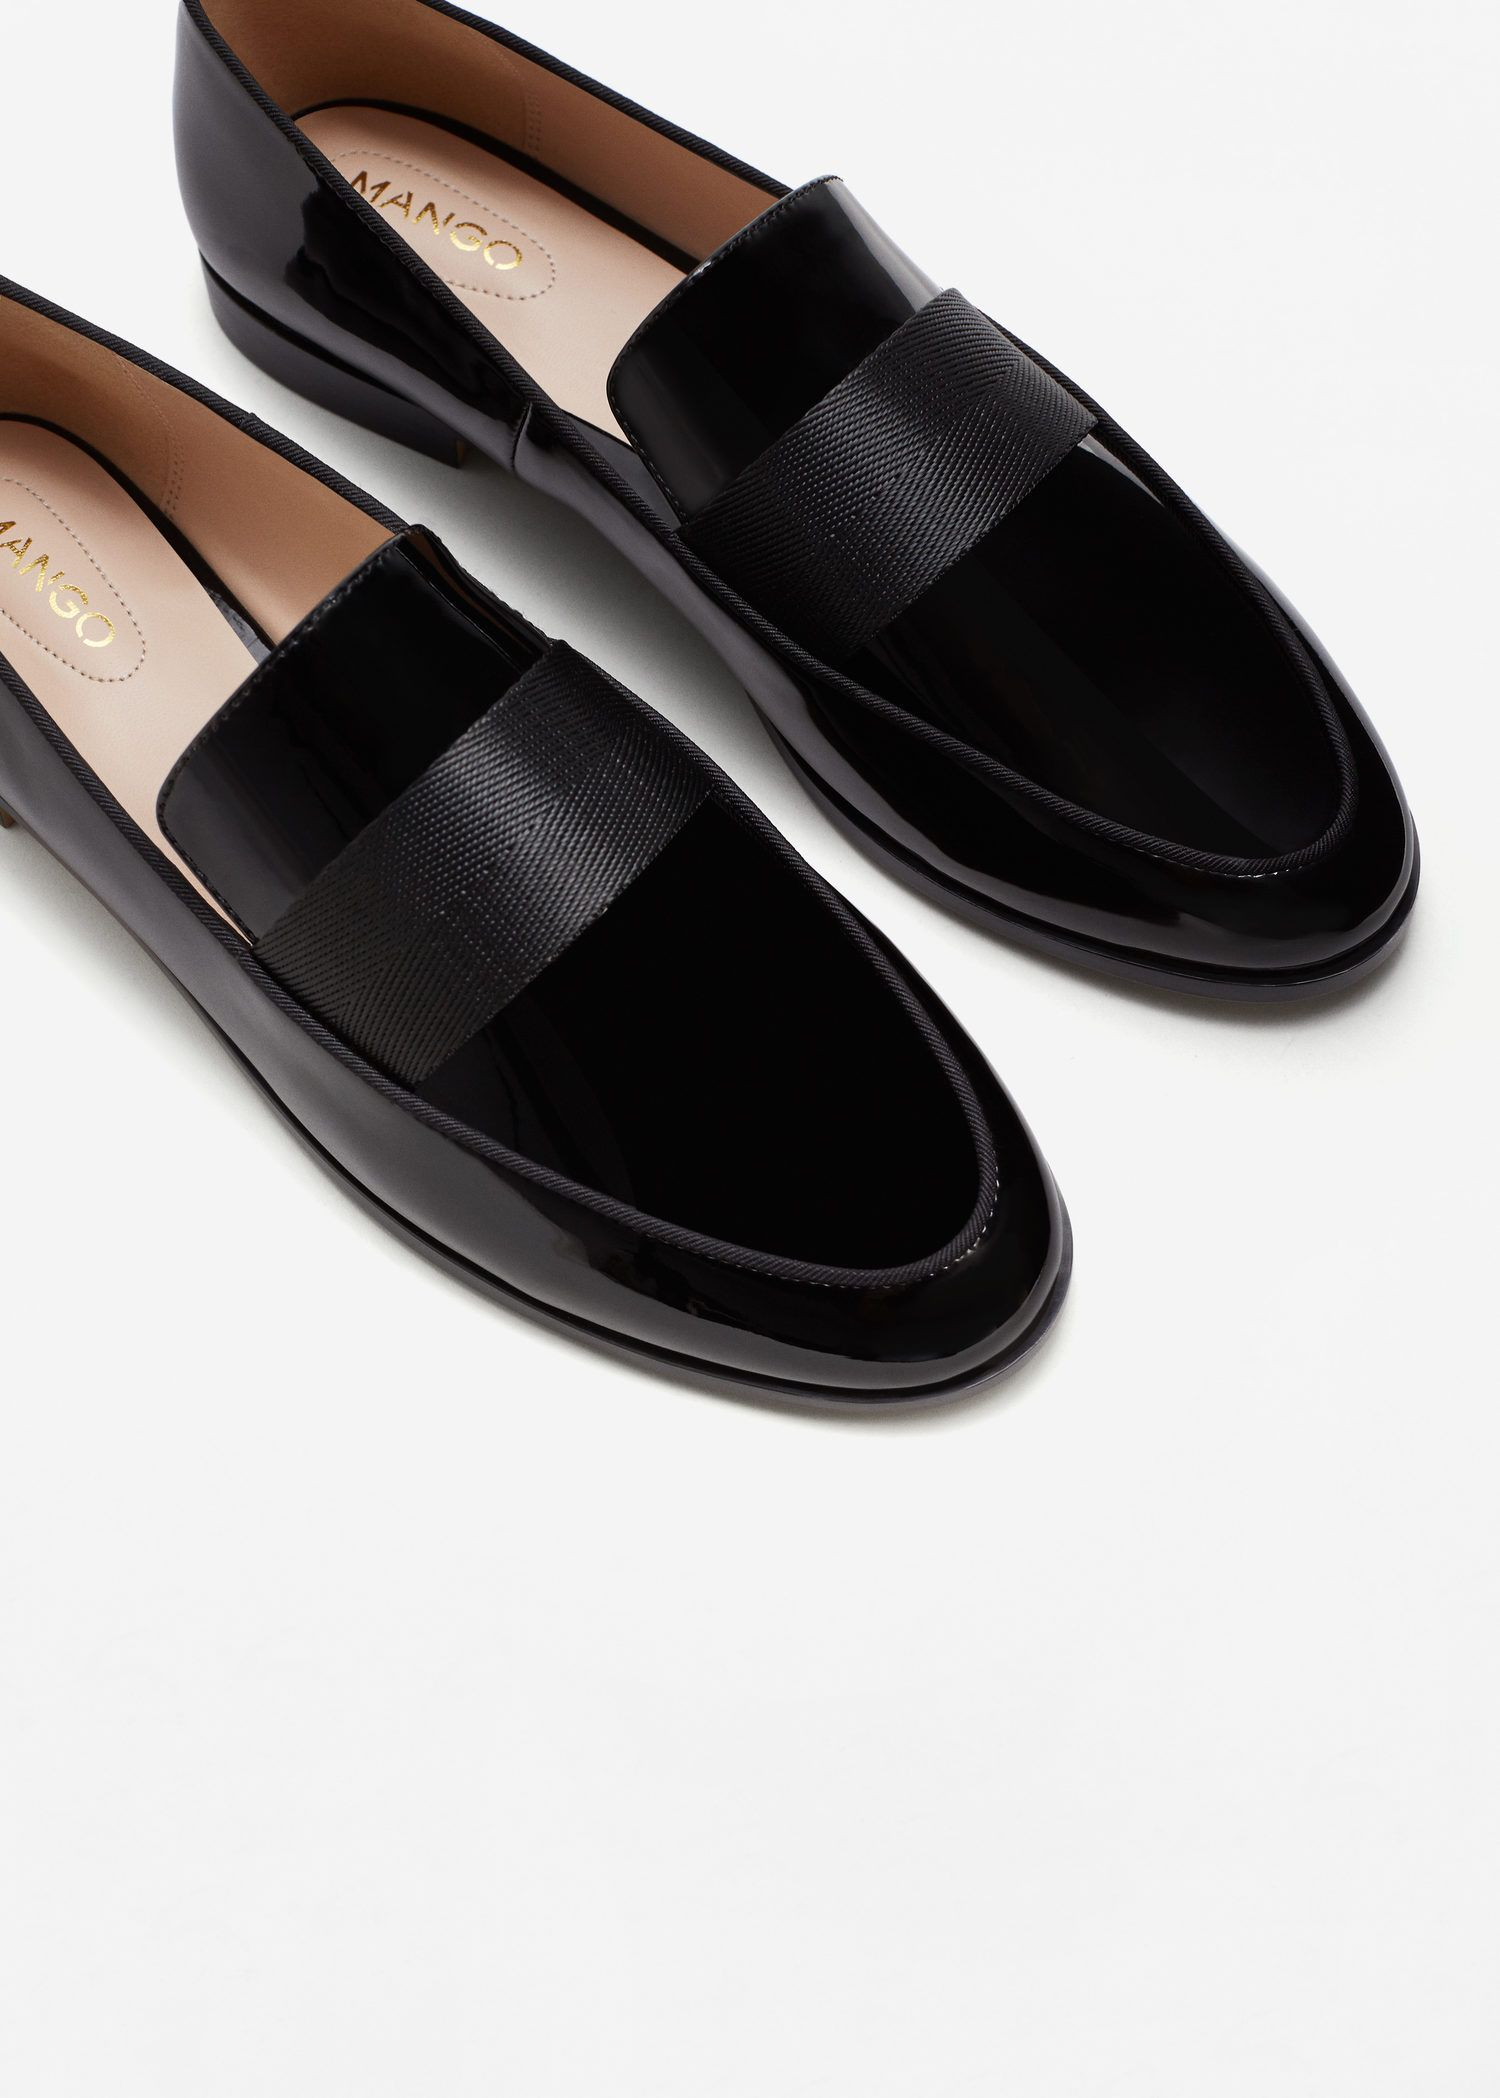 Patent loafers - Women in 2019